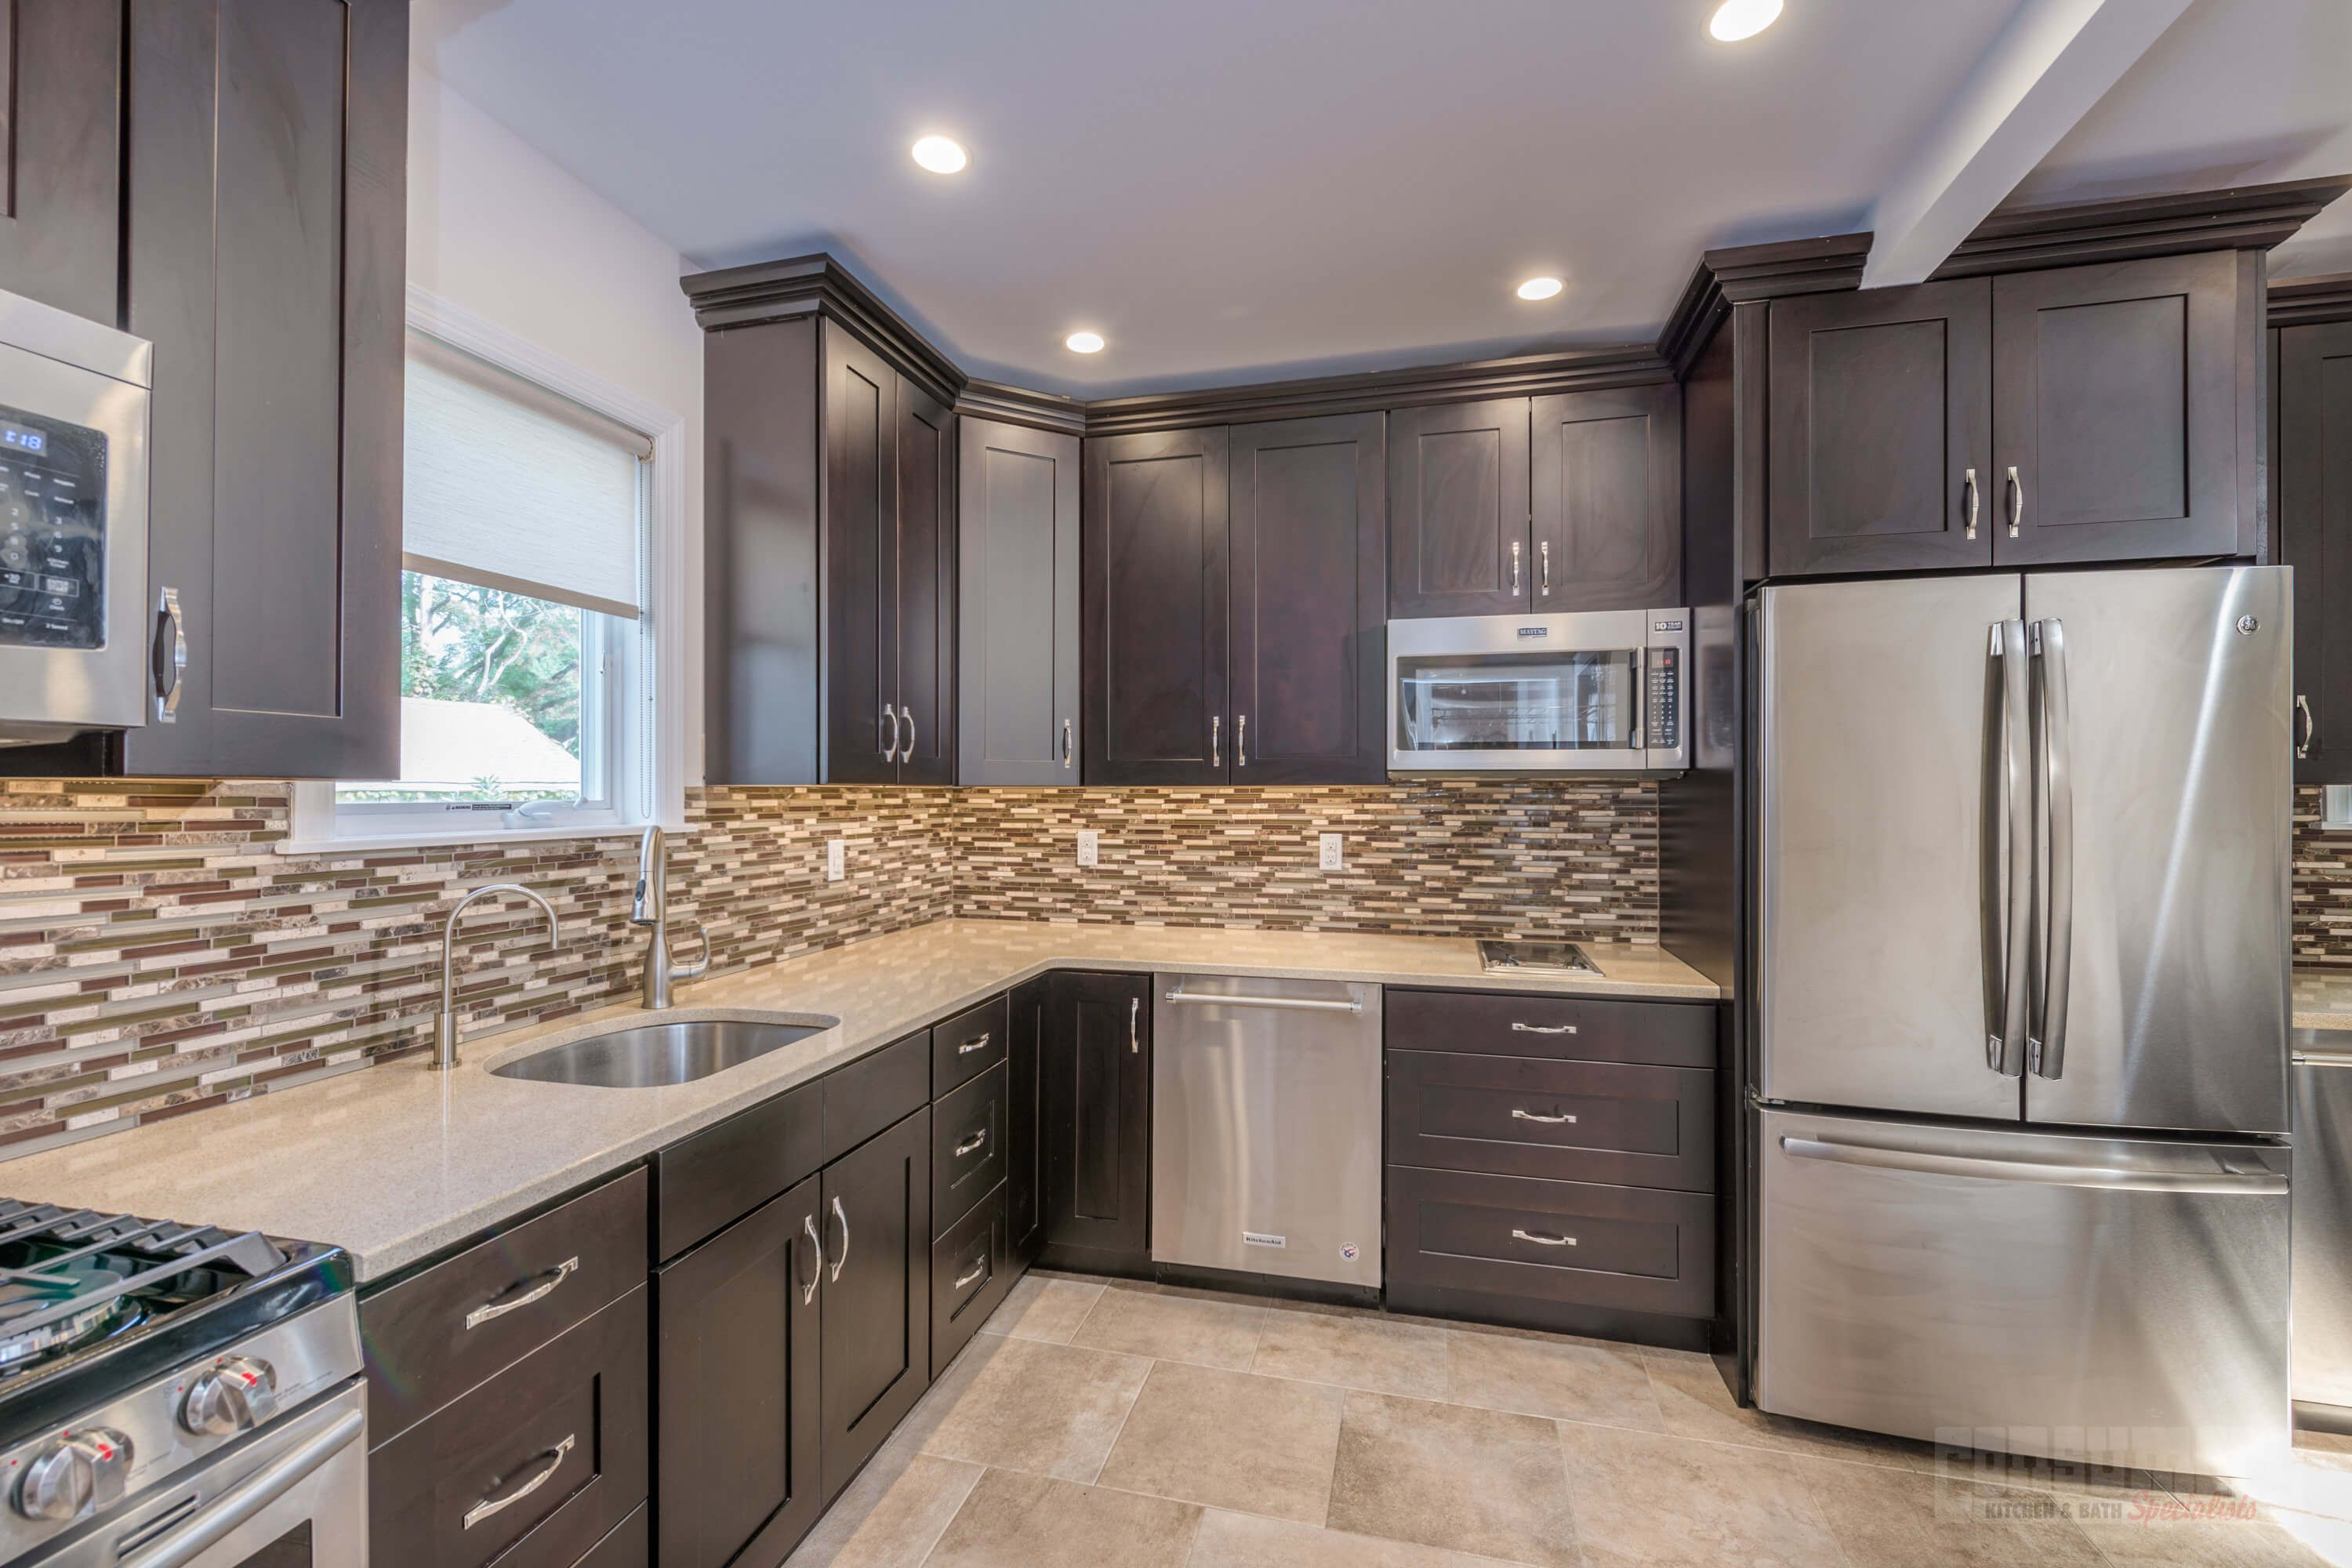 Pin By Consumers Kitchens Baths On West Hempstead Warmth With